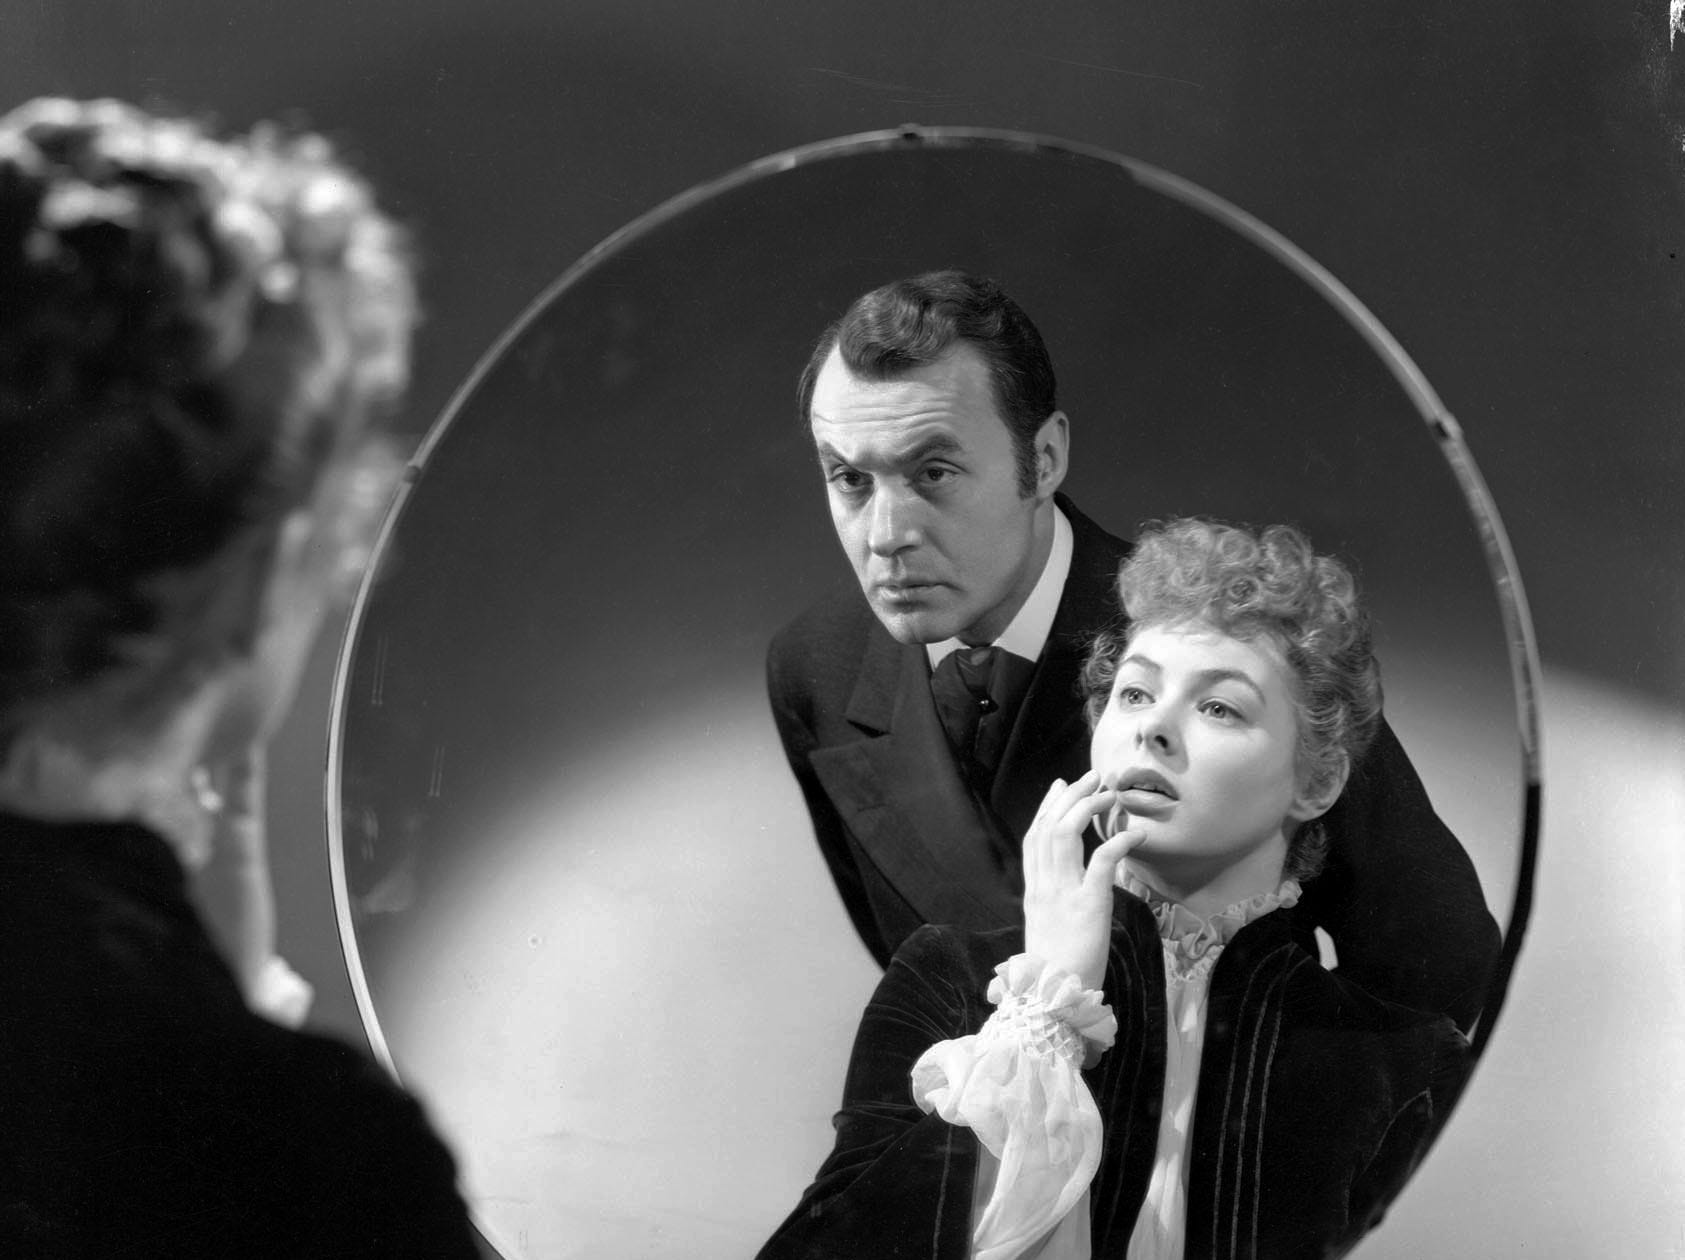 Charles Boyer and Ingrid Bergman in a scene from the motion picture 'Gaslight.'